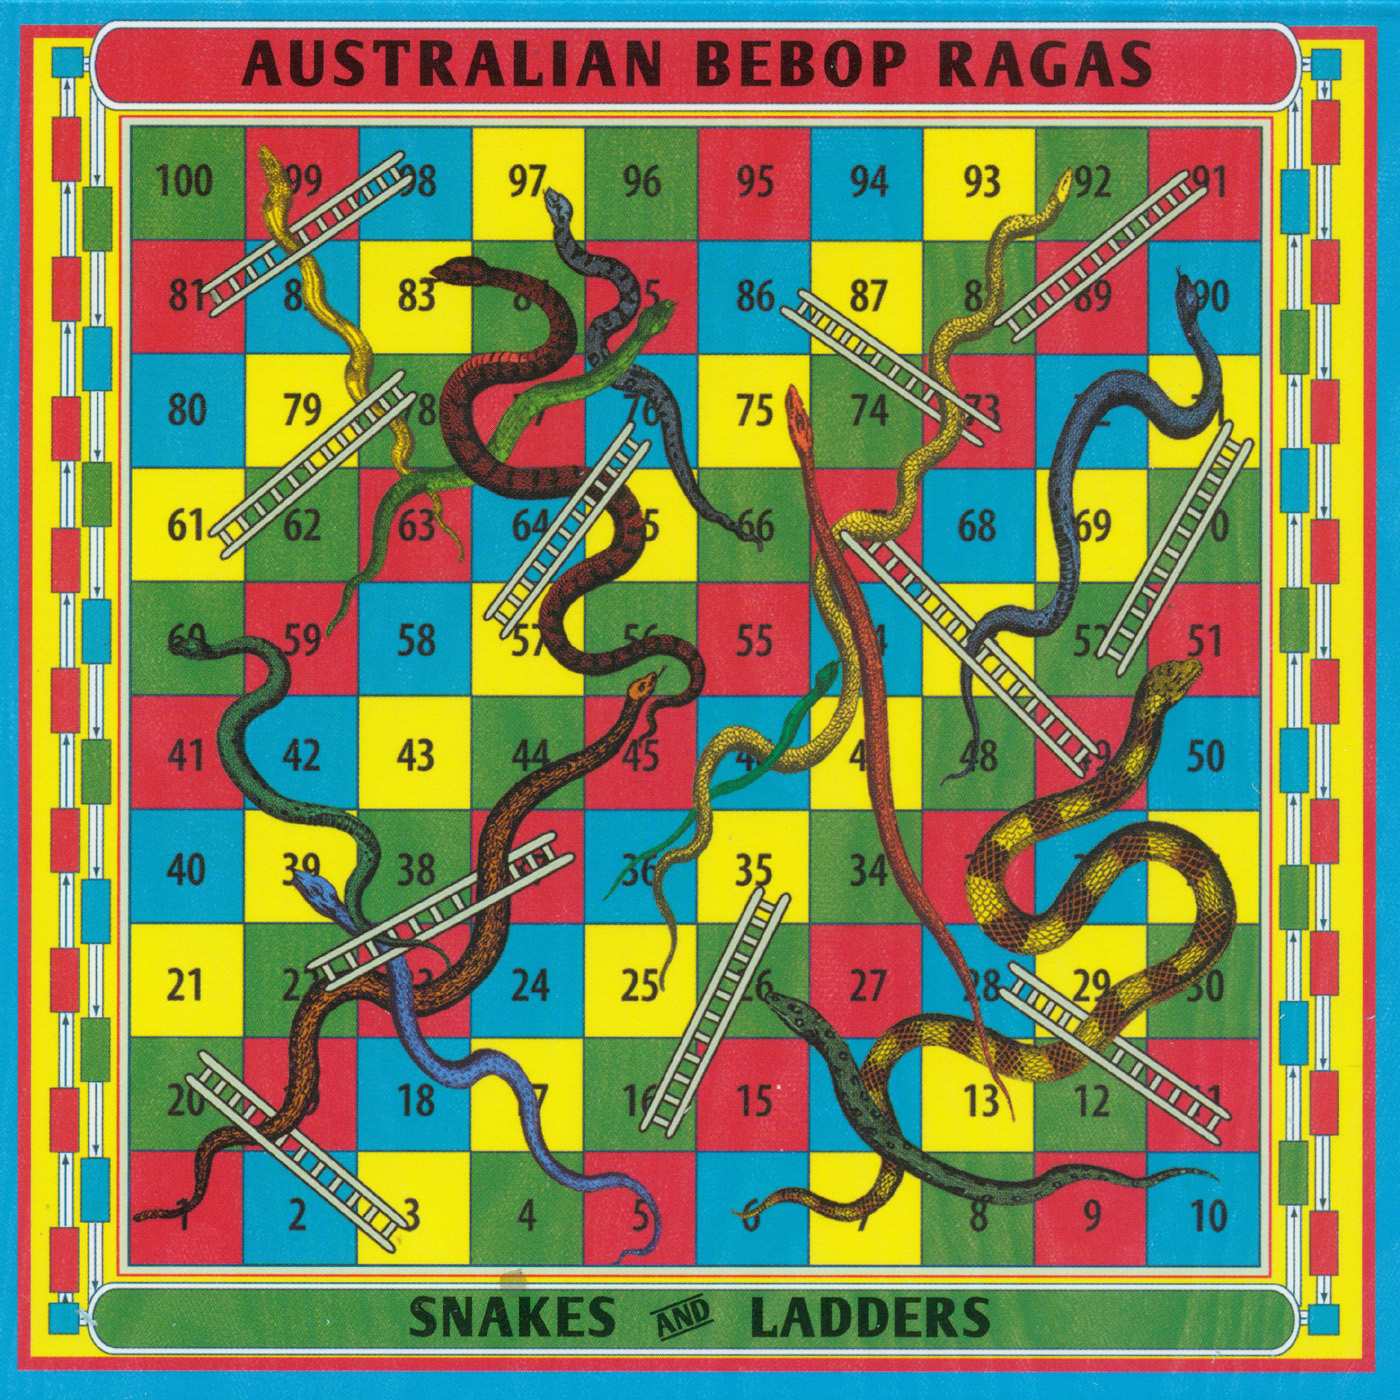 snakes and ladders Players travel along the squares sometimes using ladders, which represent good acts, that allow the player to come closer to nirvana while the snakes were slides into evil traditional game from ancient india was brought to the uk in 1892 and first commercially published in the usa by milton bradley in 1943 (as chutes and ladders).